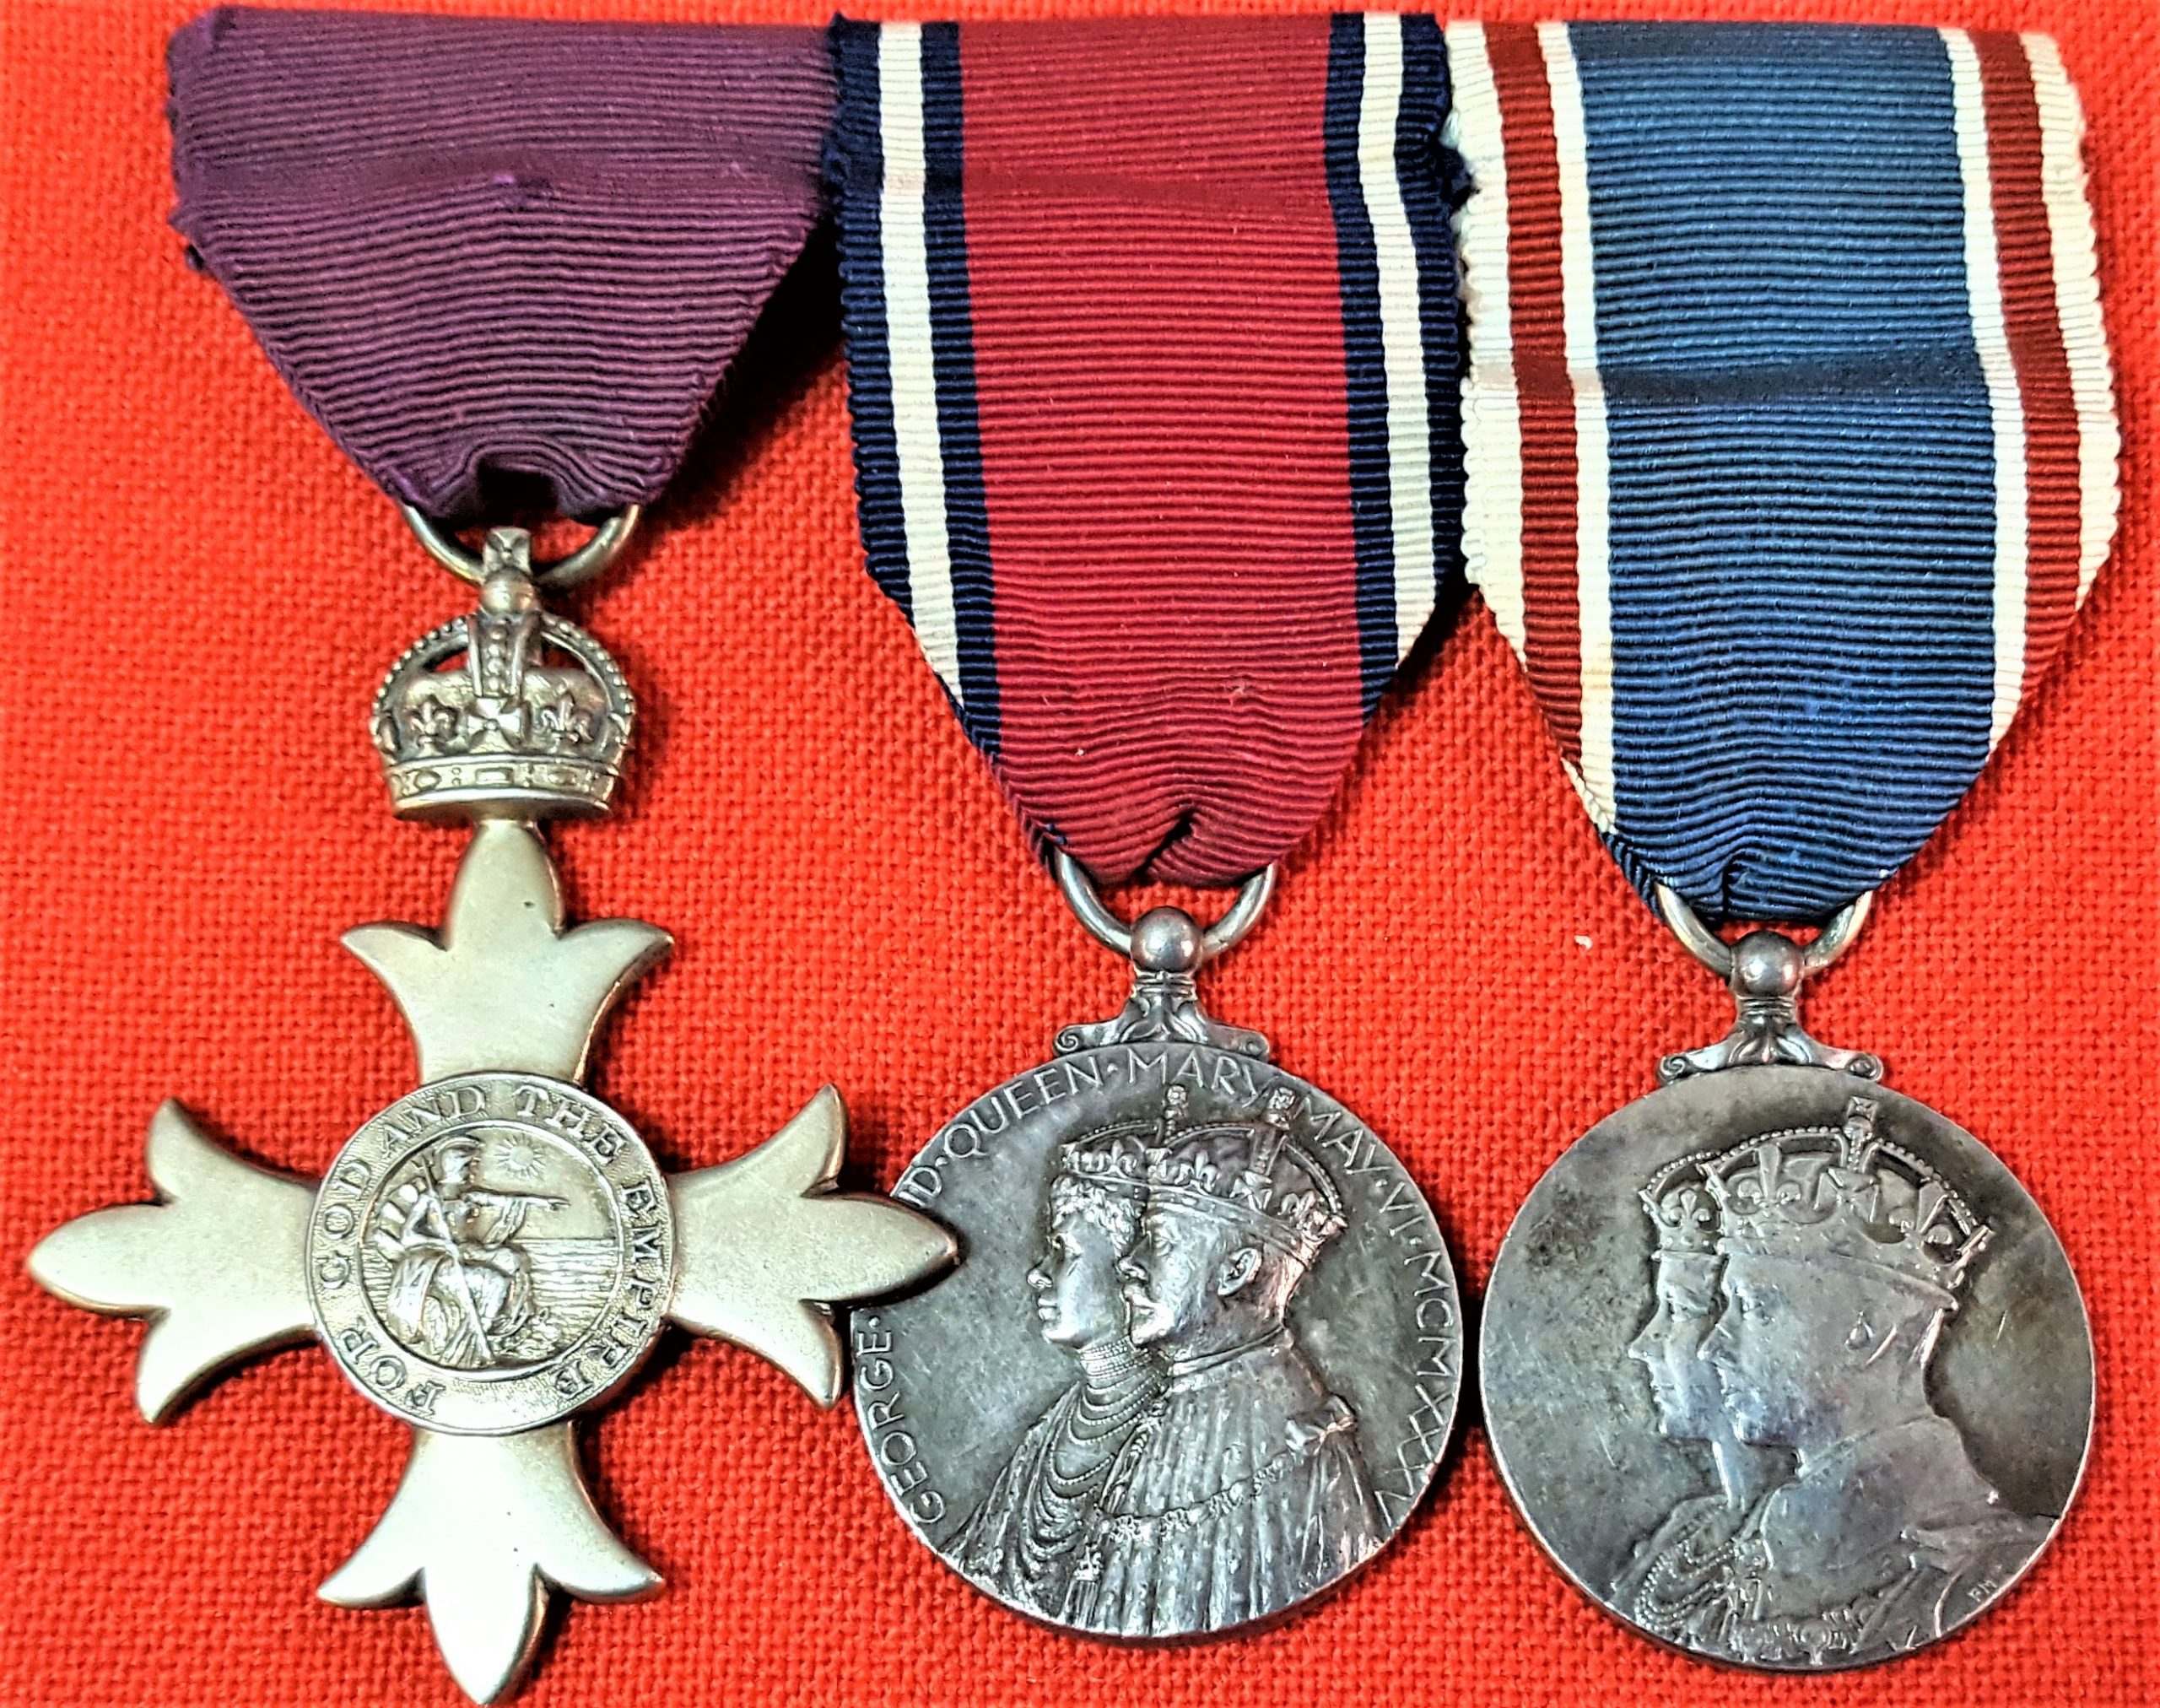 POST WW1 ERA ORDER OF THE BRITISH EMPIRE, JUBILEE & CORONATION MEDAL GROUP